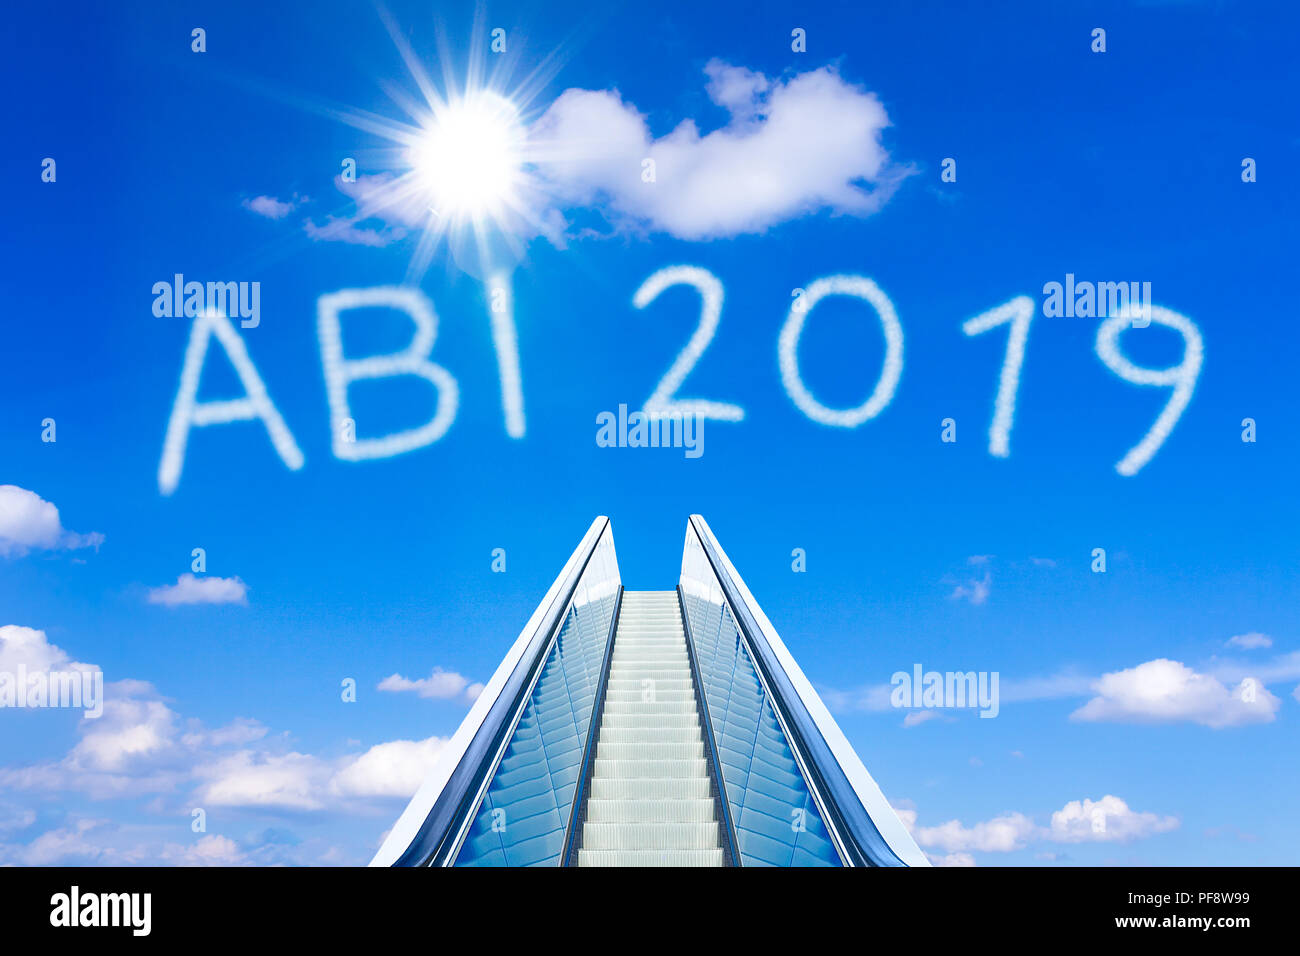 Escalator into a blue sky, concept of achievement, ABI 2019 text, Abitur meaning german high school graduation or A levels - Stock Image